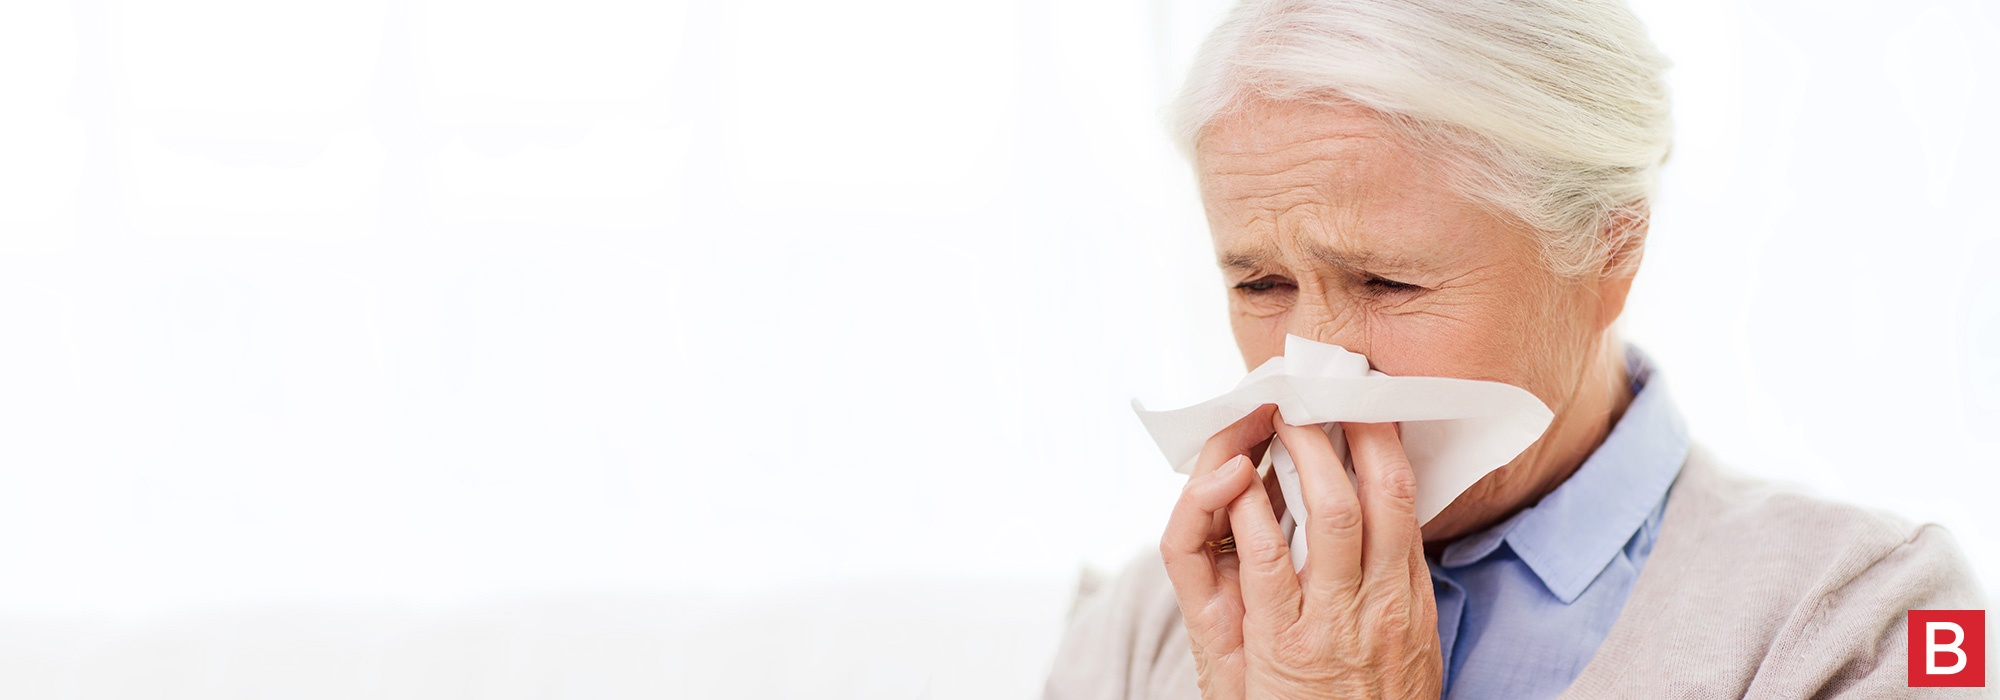 what-need-to-know-flu-2000x700.jpg